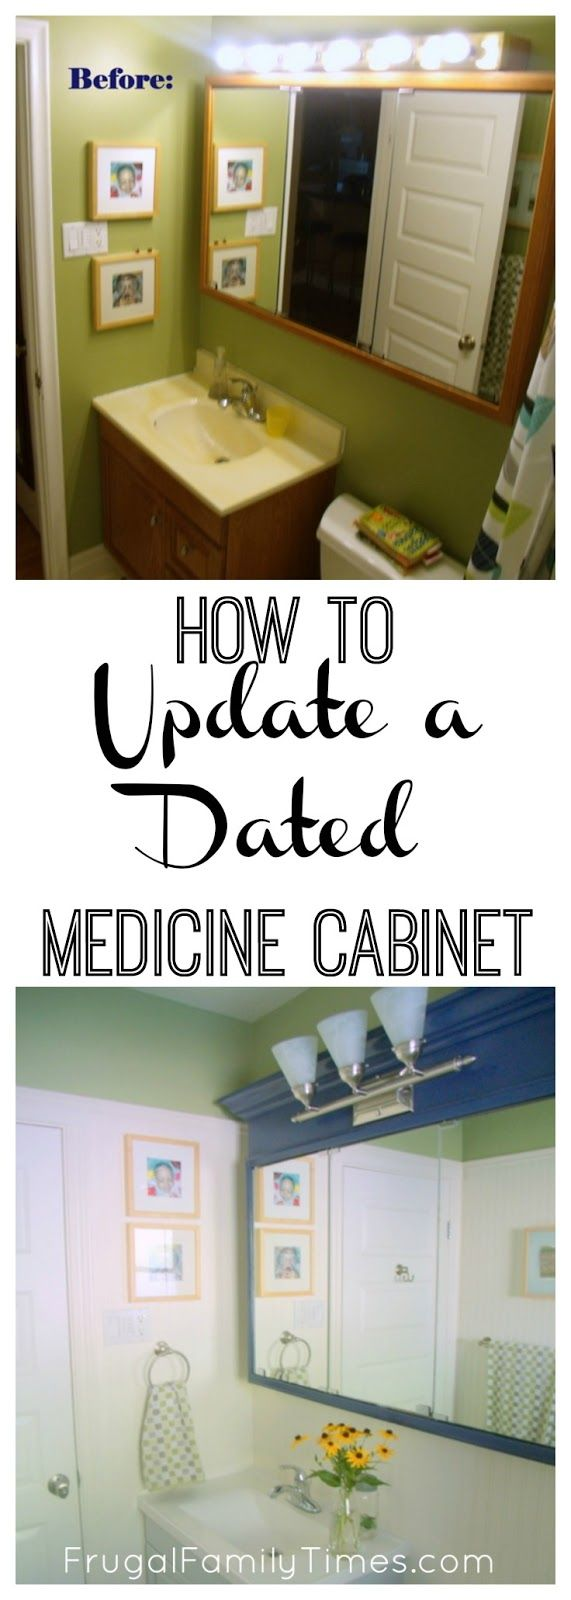 1000 ideas about medicine cabinet redo on pinterest diy - How to redo bathroom cabinets for cheap ...